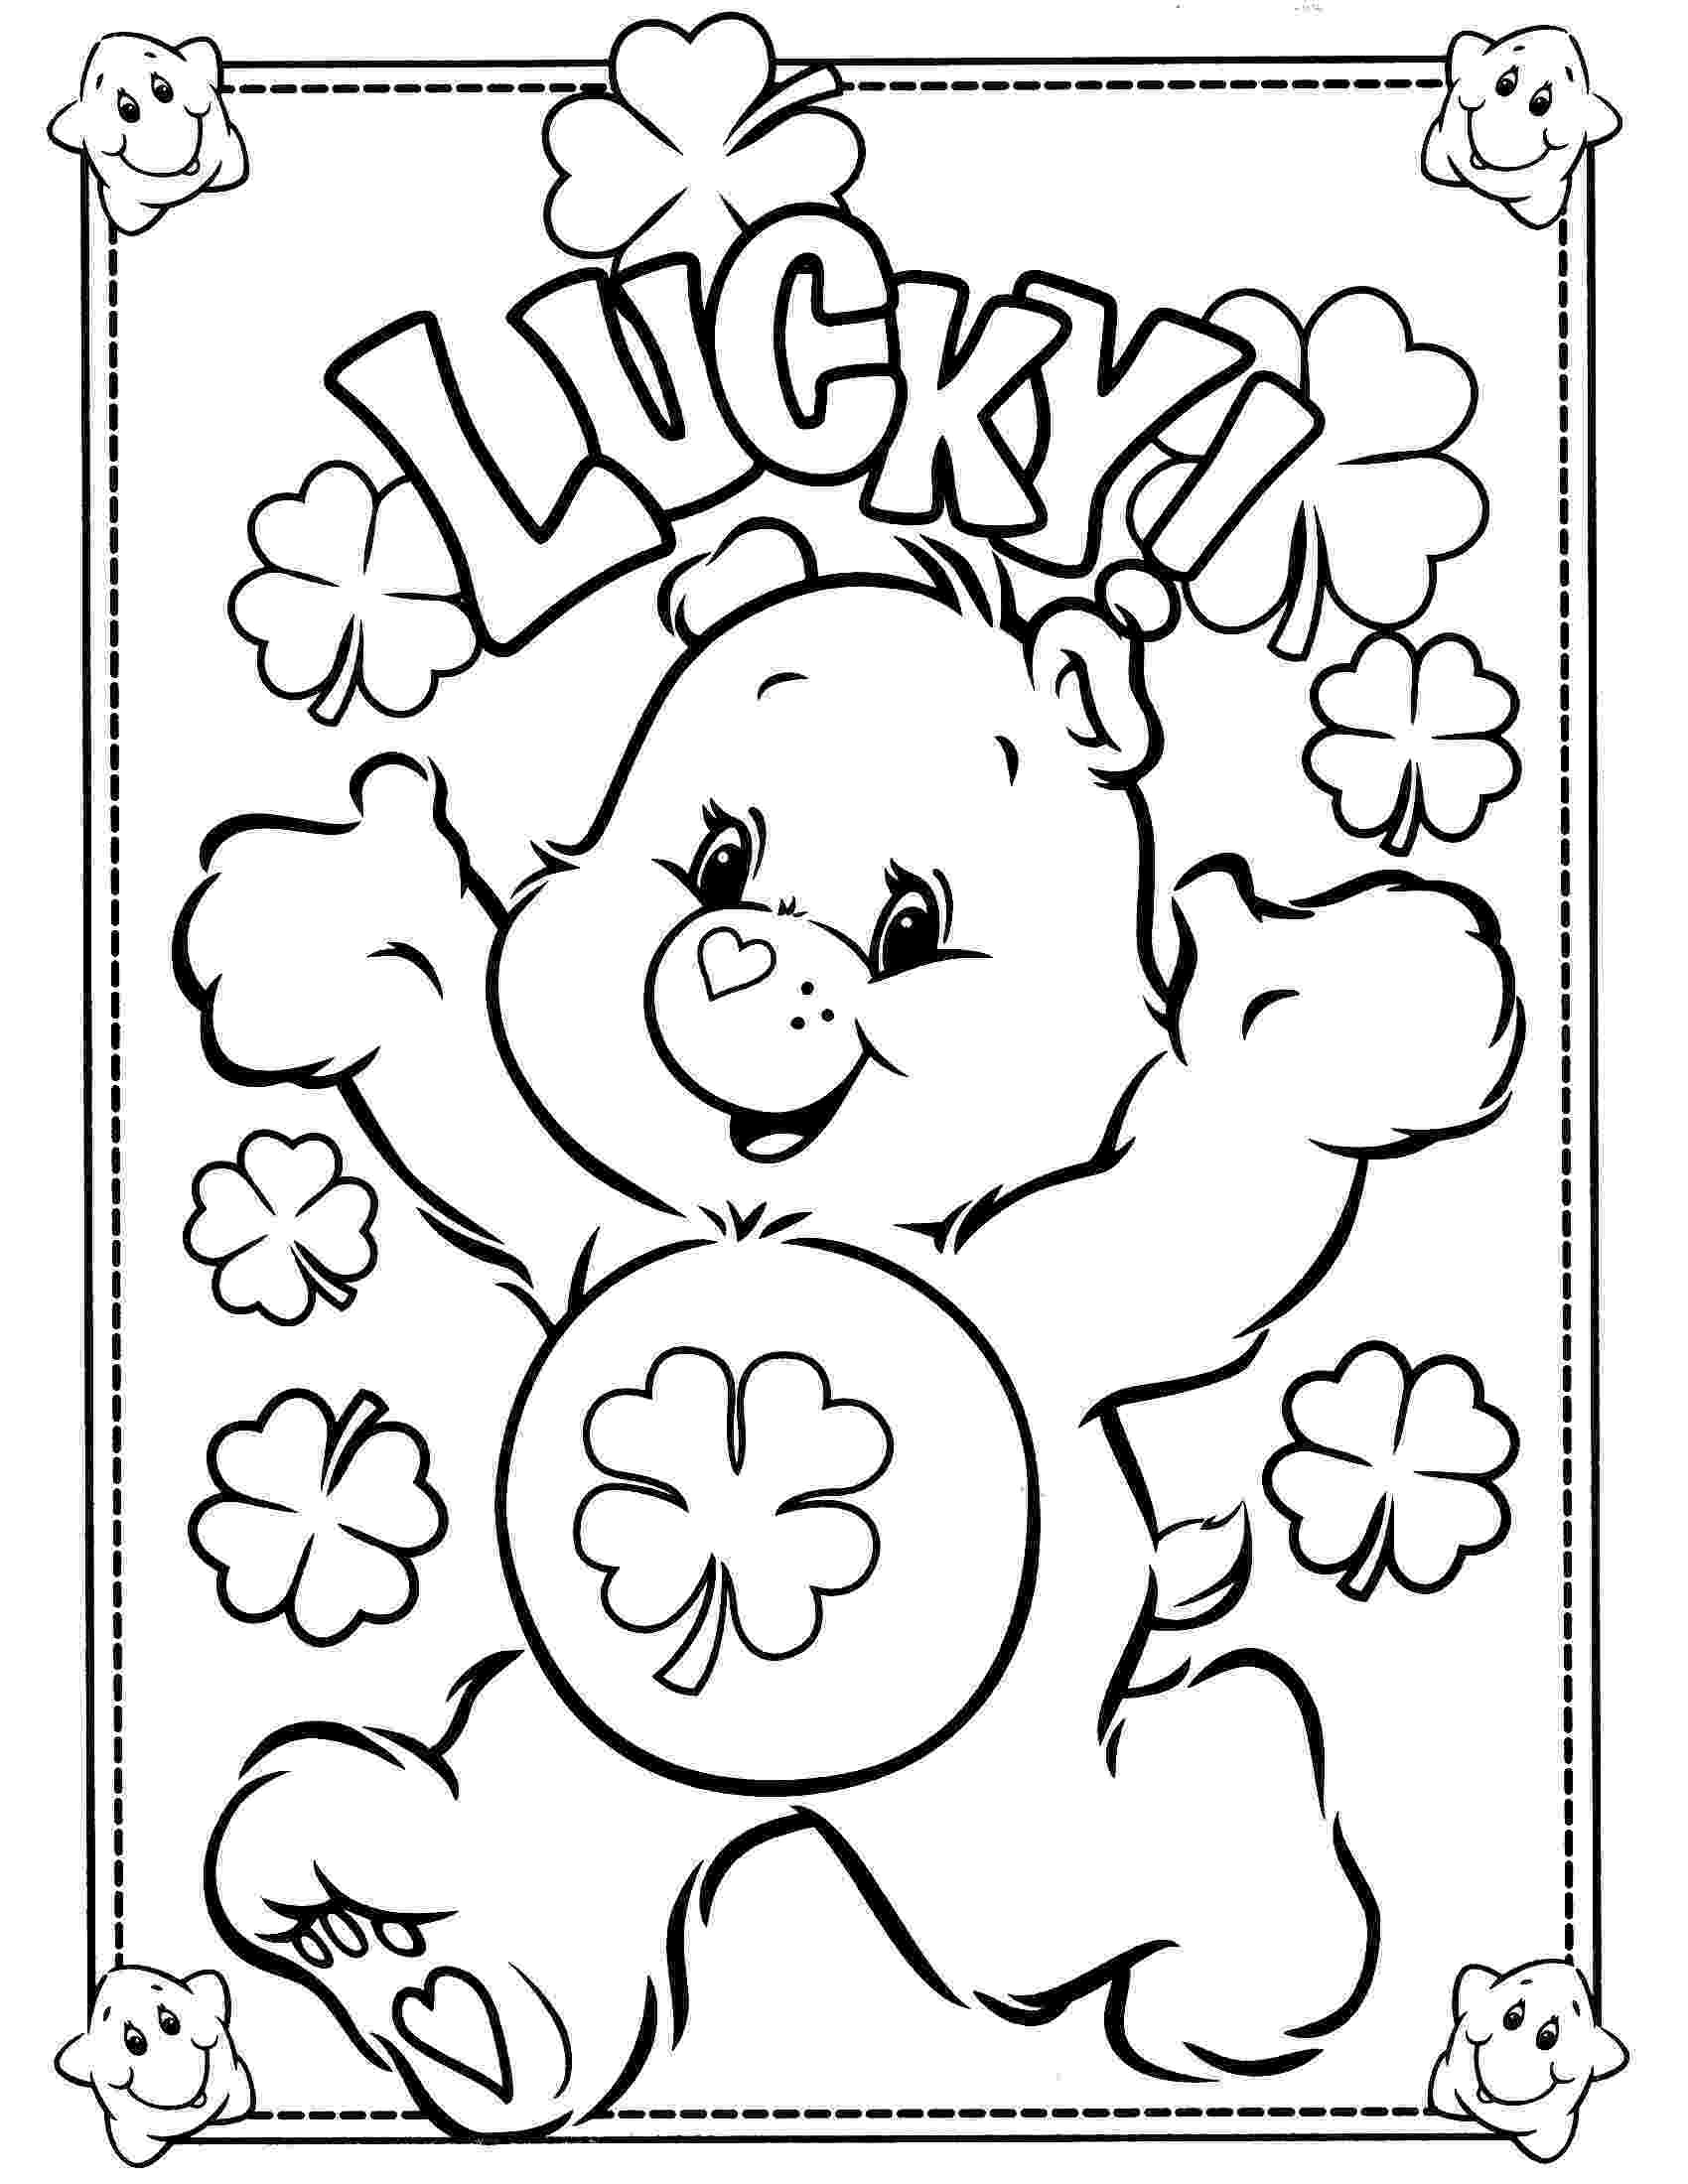 coloring page bear free printable care bear coloring pages for kids bear page coloring